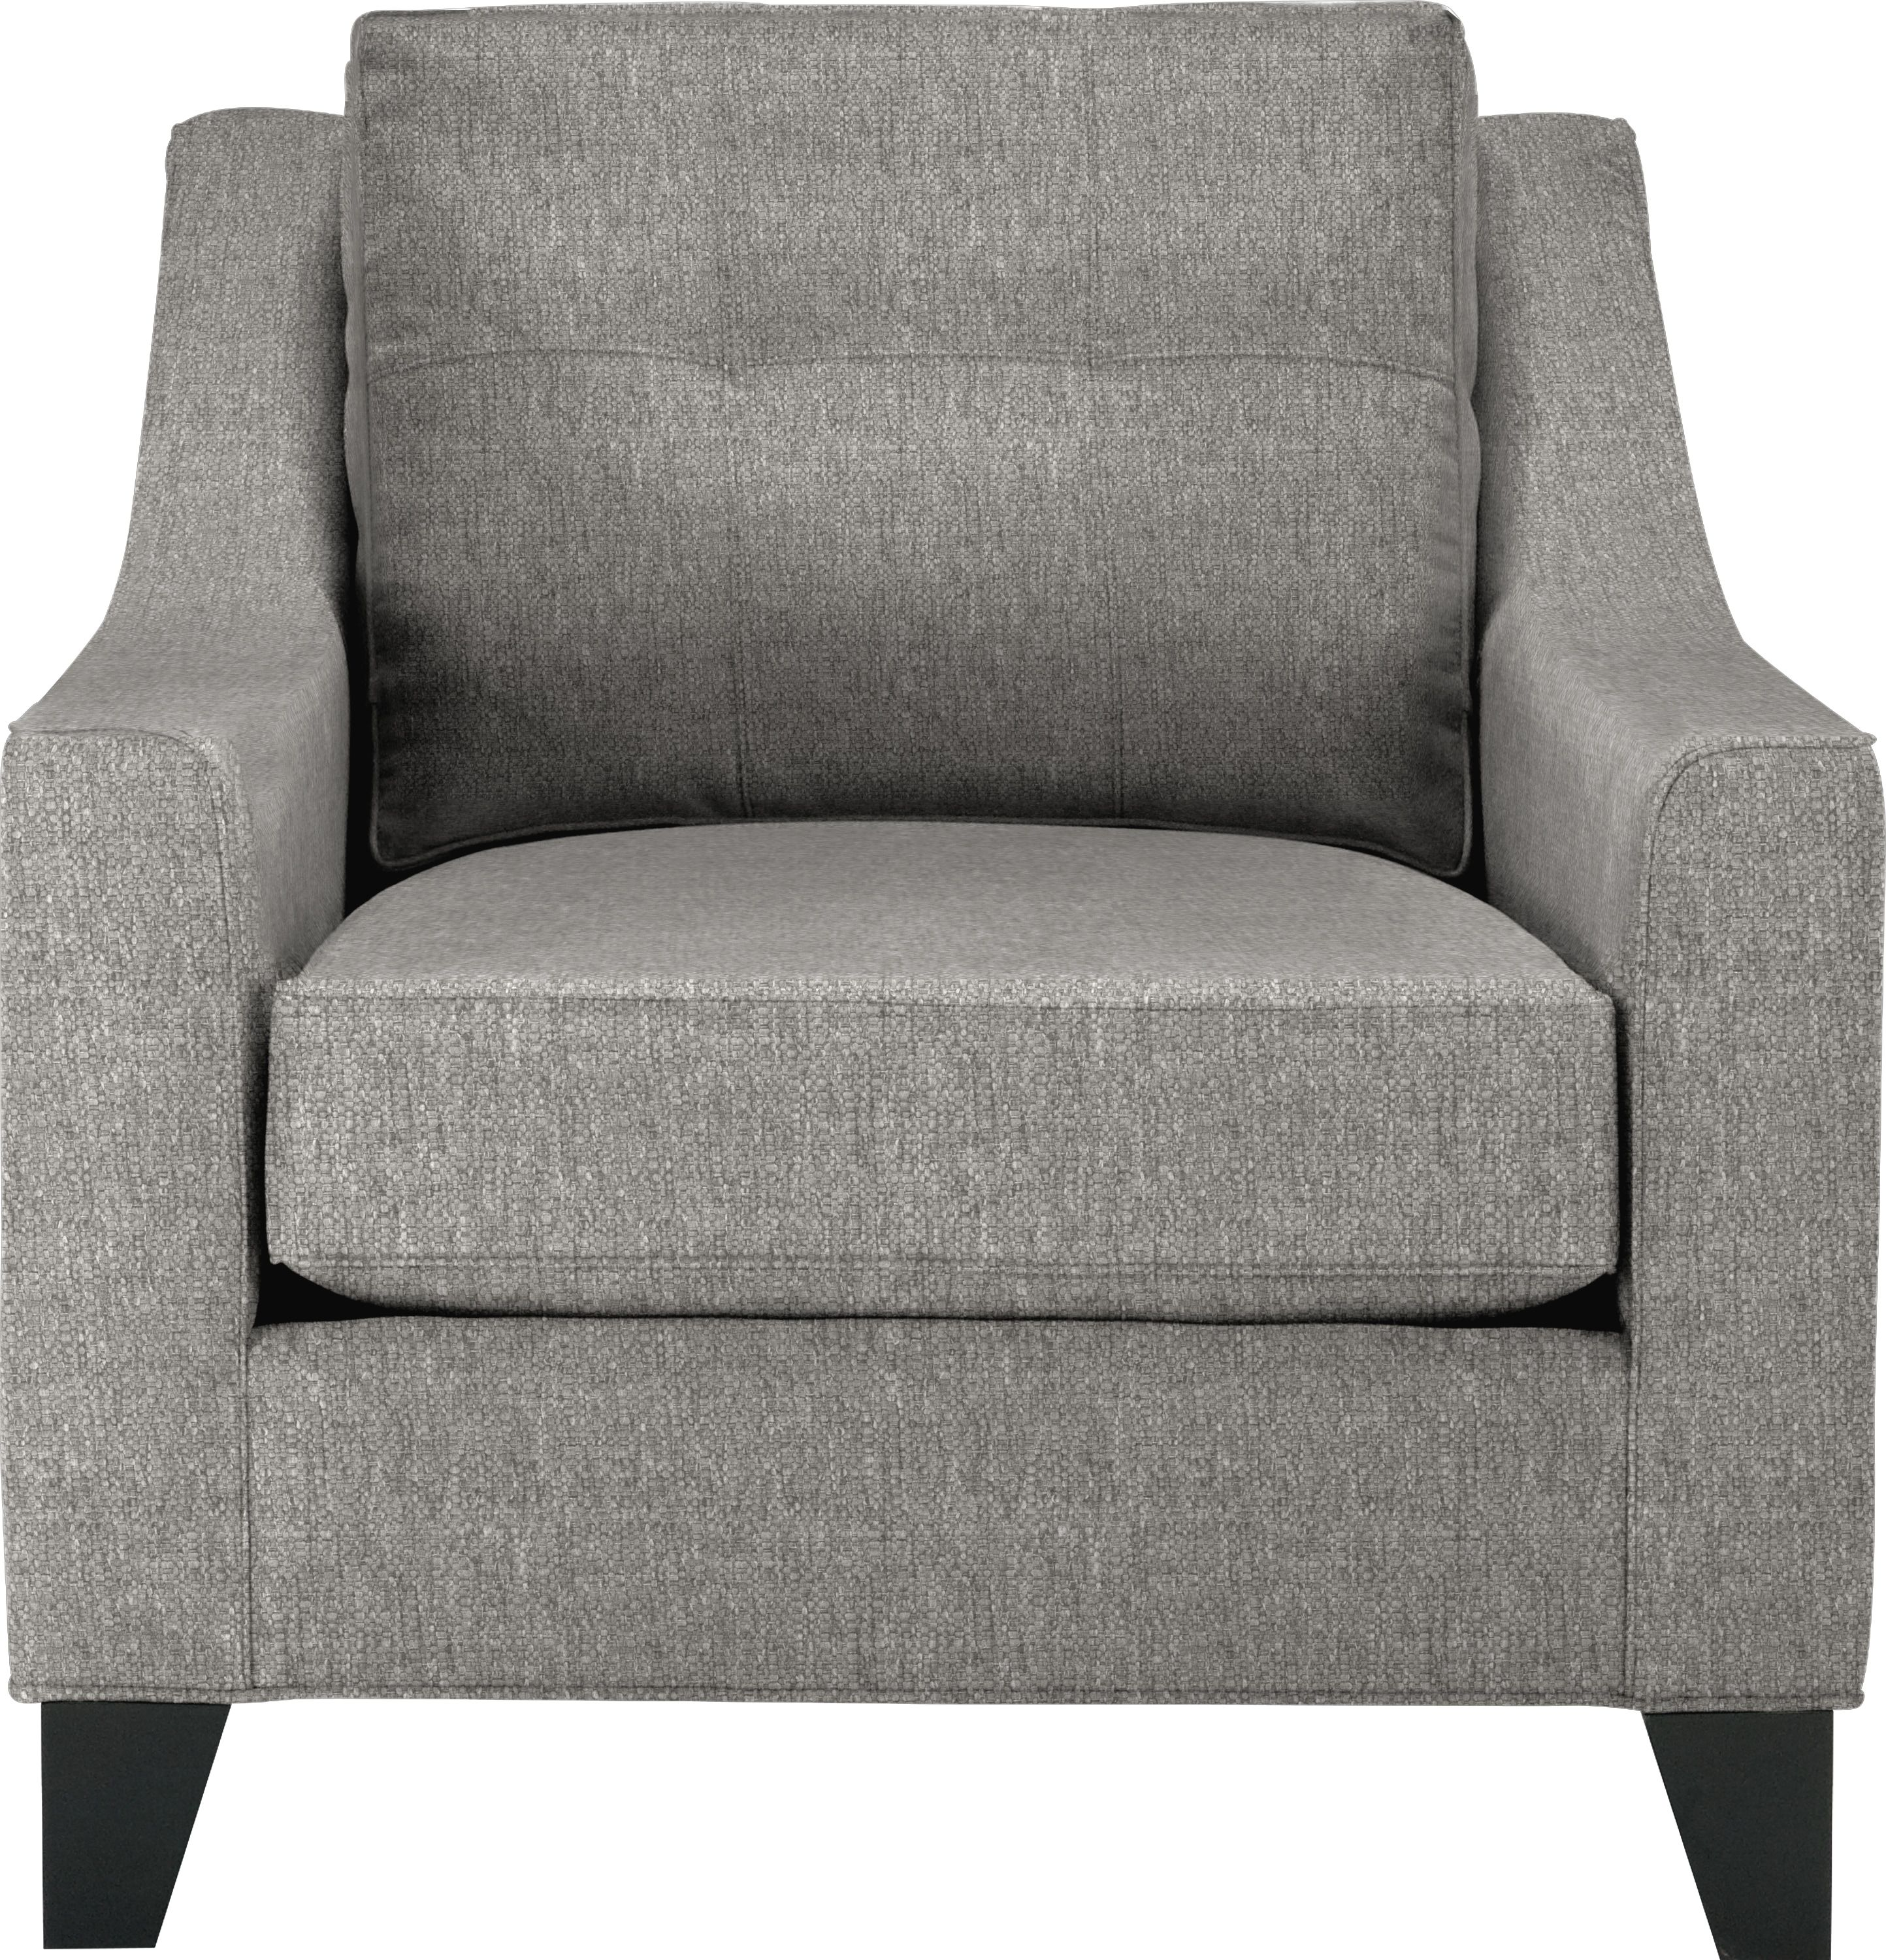 Cindy Crawford Brand Accent Chair: Affordable Chair, Living Room